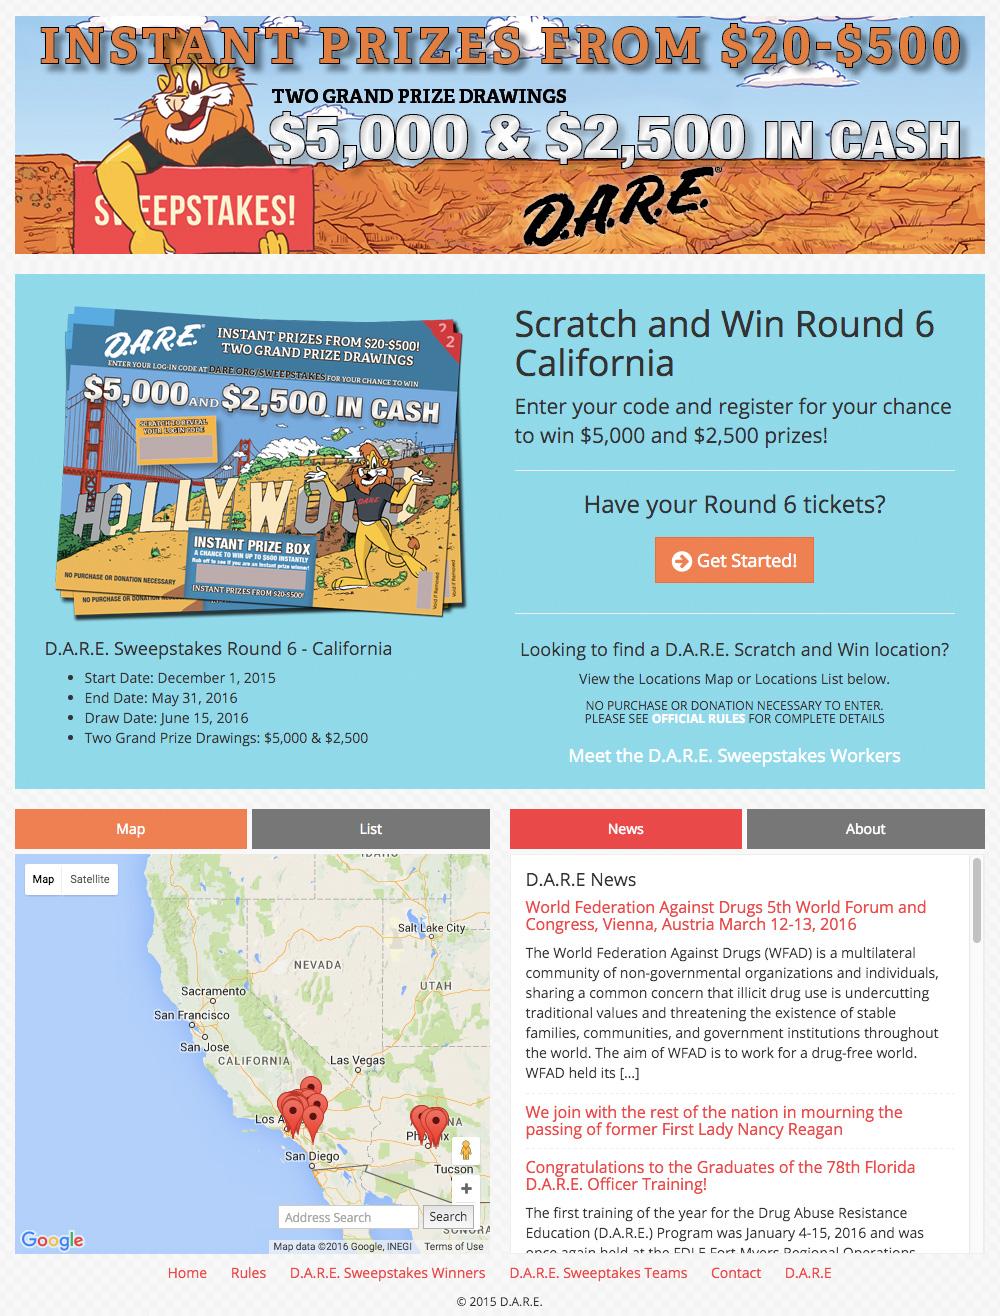 DARE Sweepstakes